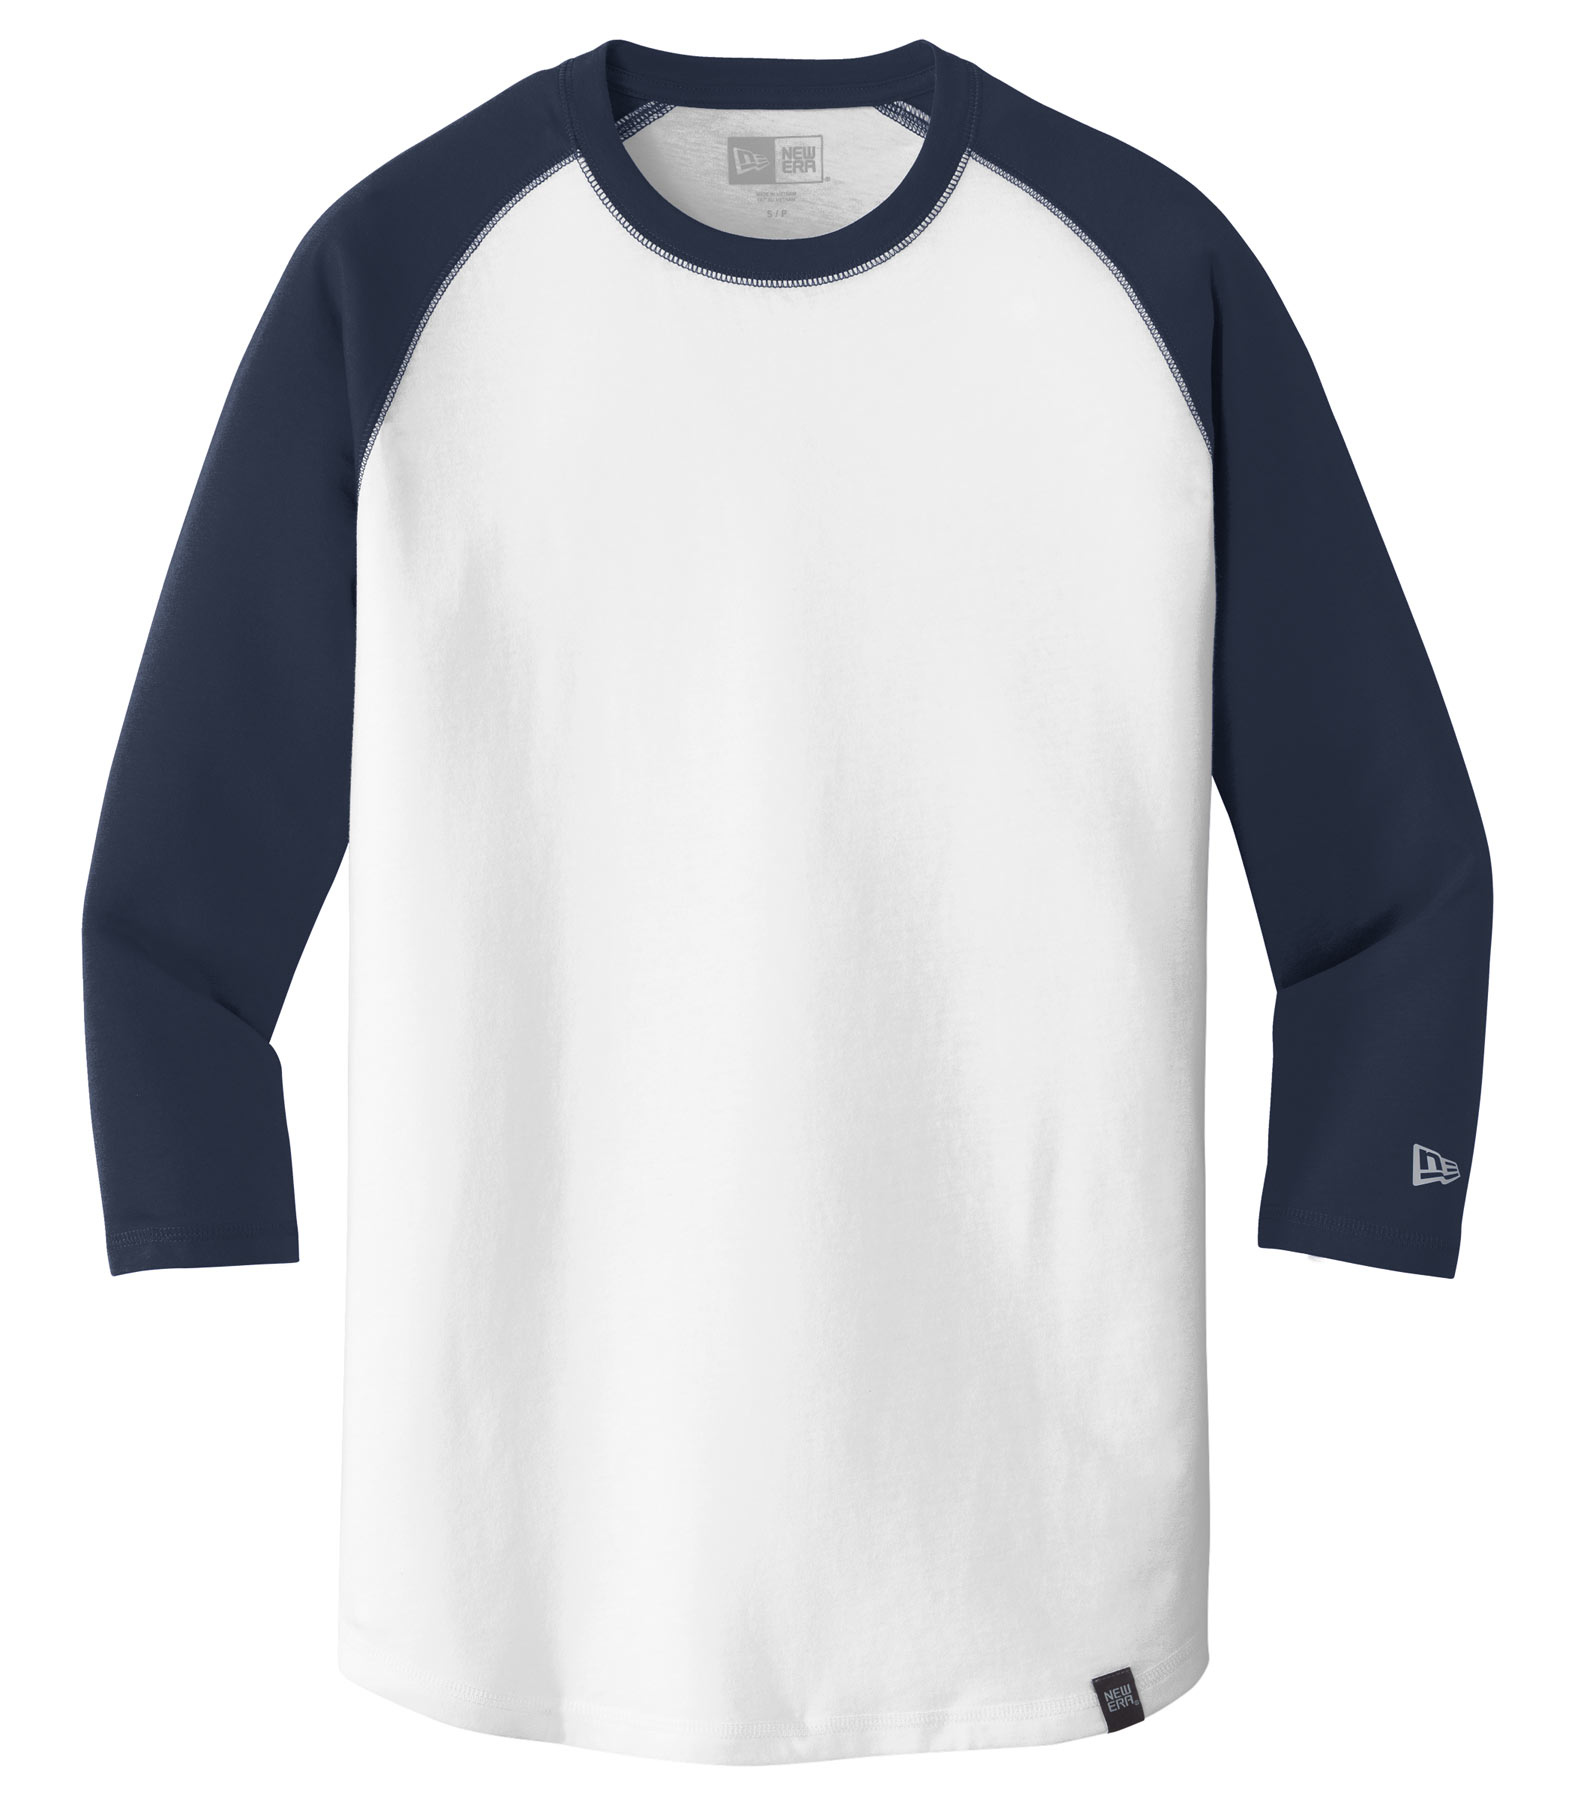 New Era® Mens Heritage Blend 3/4 Sleeve Baseball Raglan Tee